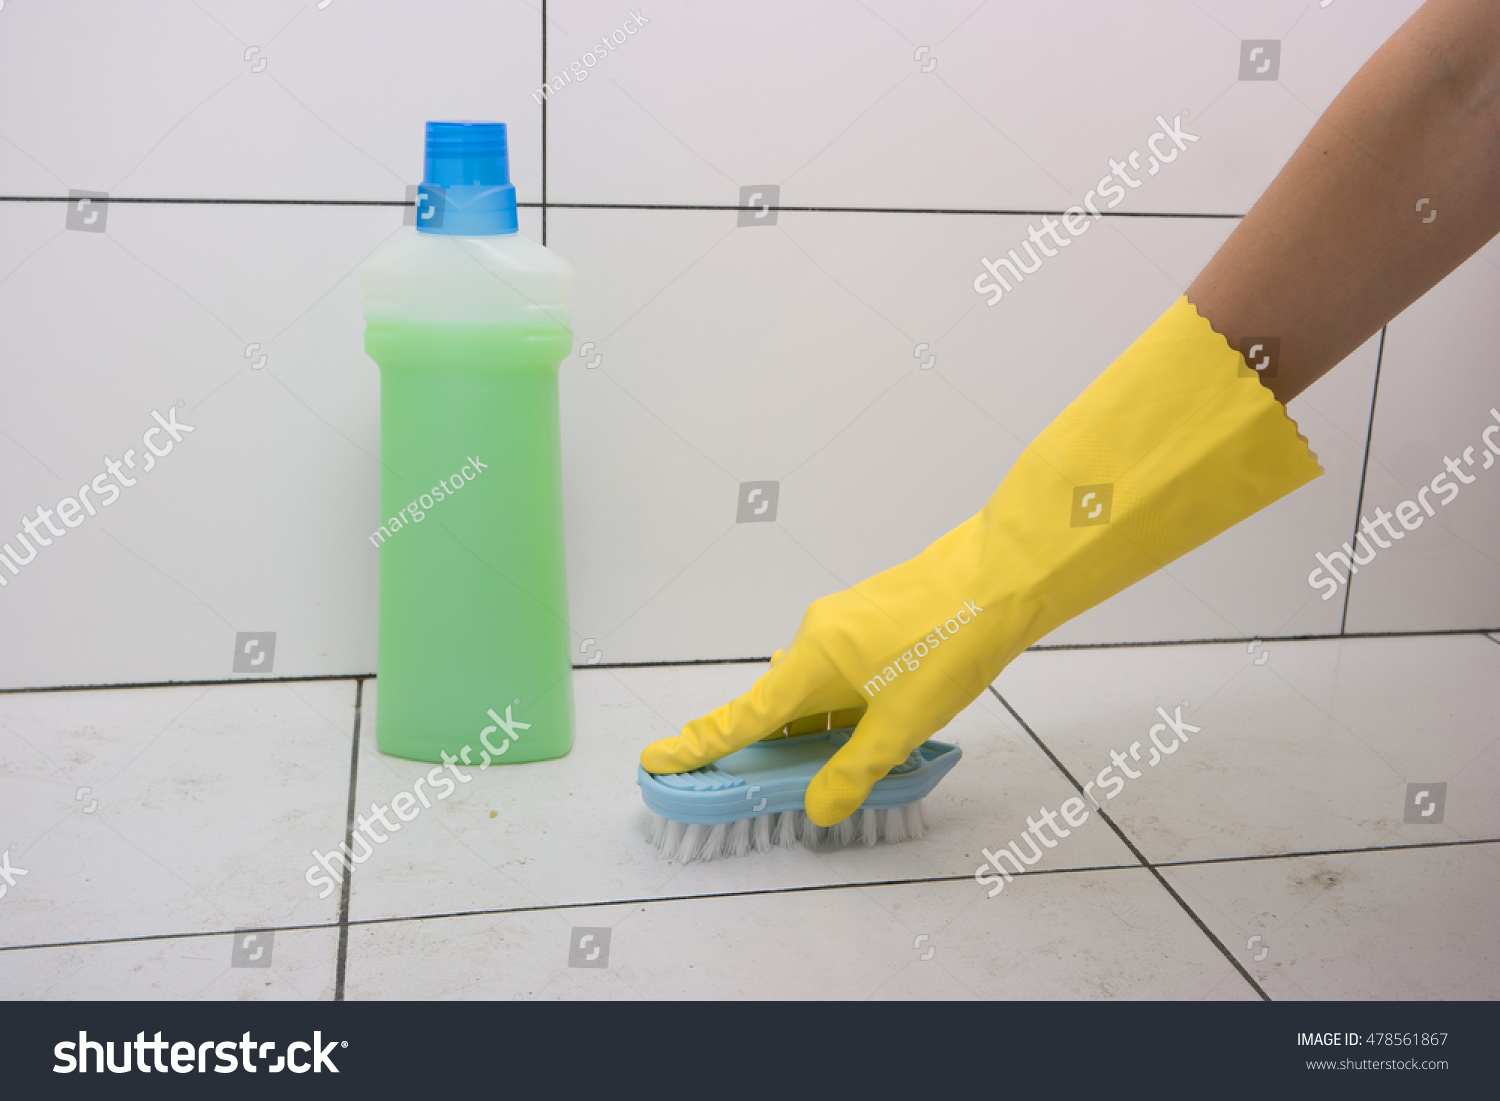 Housewife Rubber Gloves Clean Floor Brush Stock Photo (Royalty Free ...